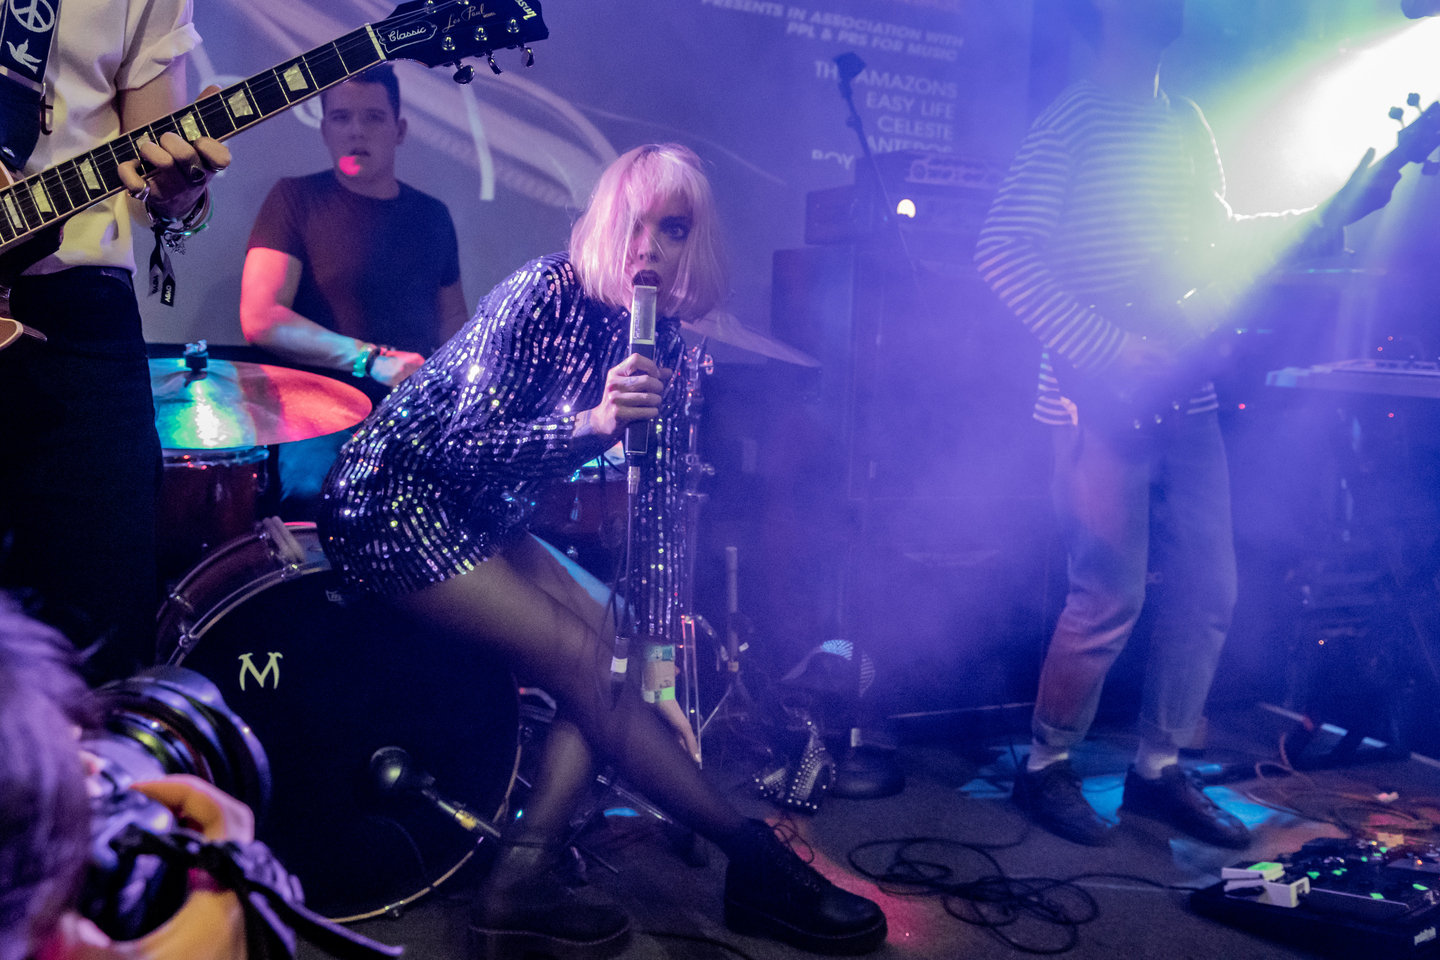 Anteros at British Music Embassy @ Latitude 30, presented by BBC Radio 1 in association with PPL & PRS for Music – Photo by David Walker